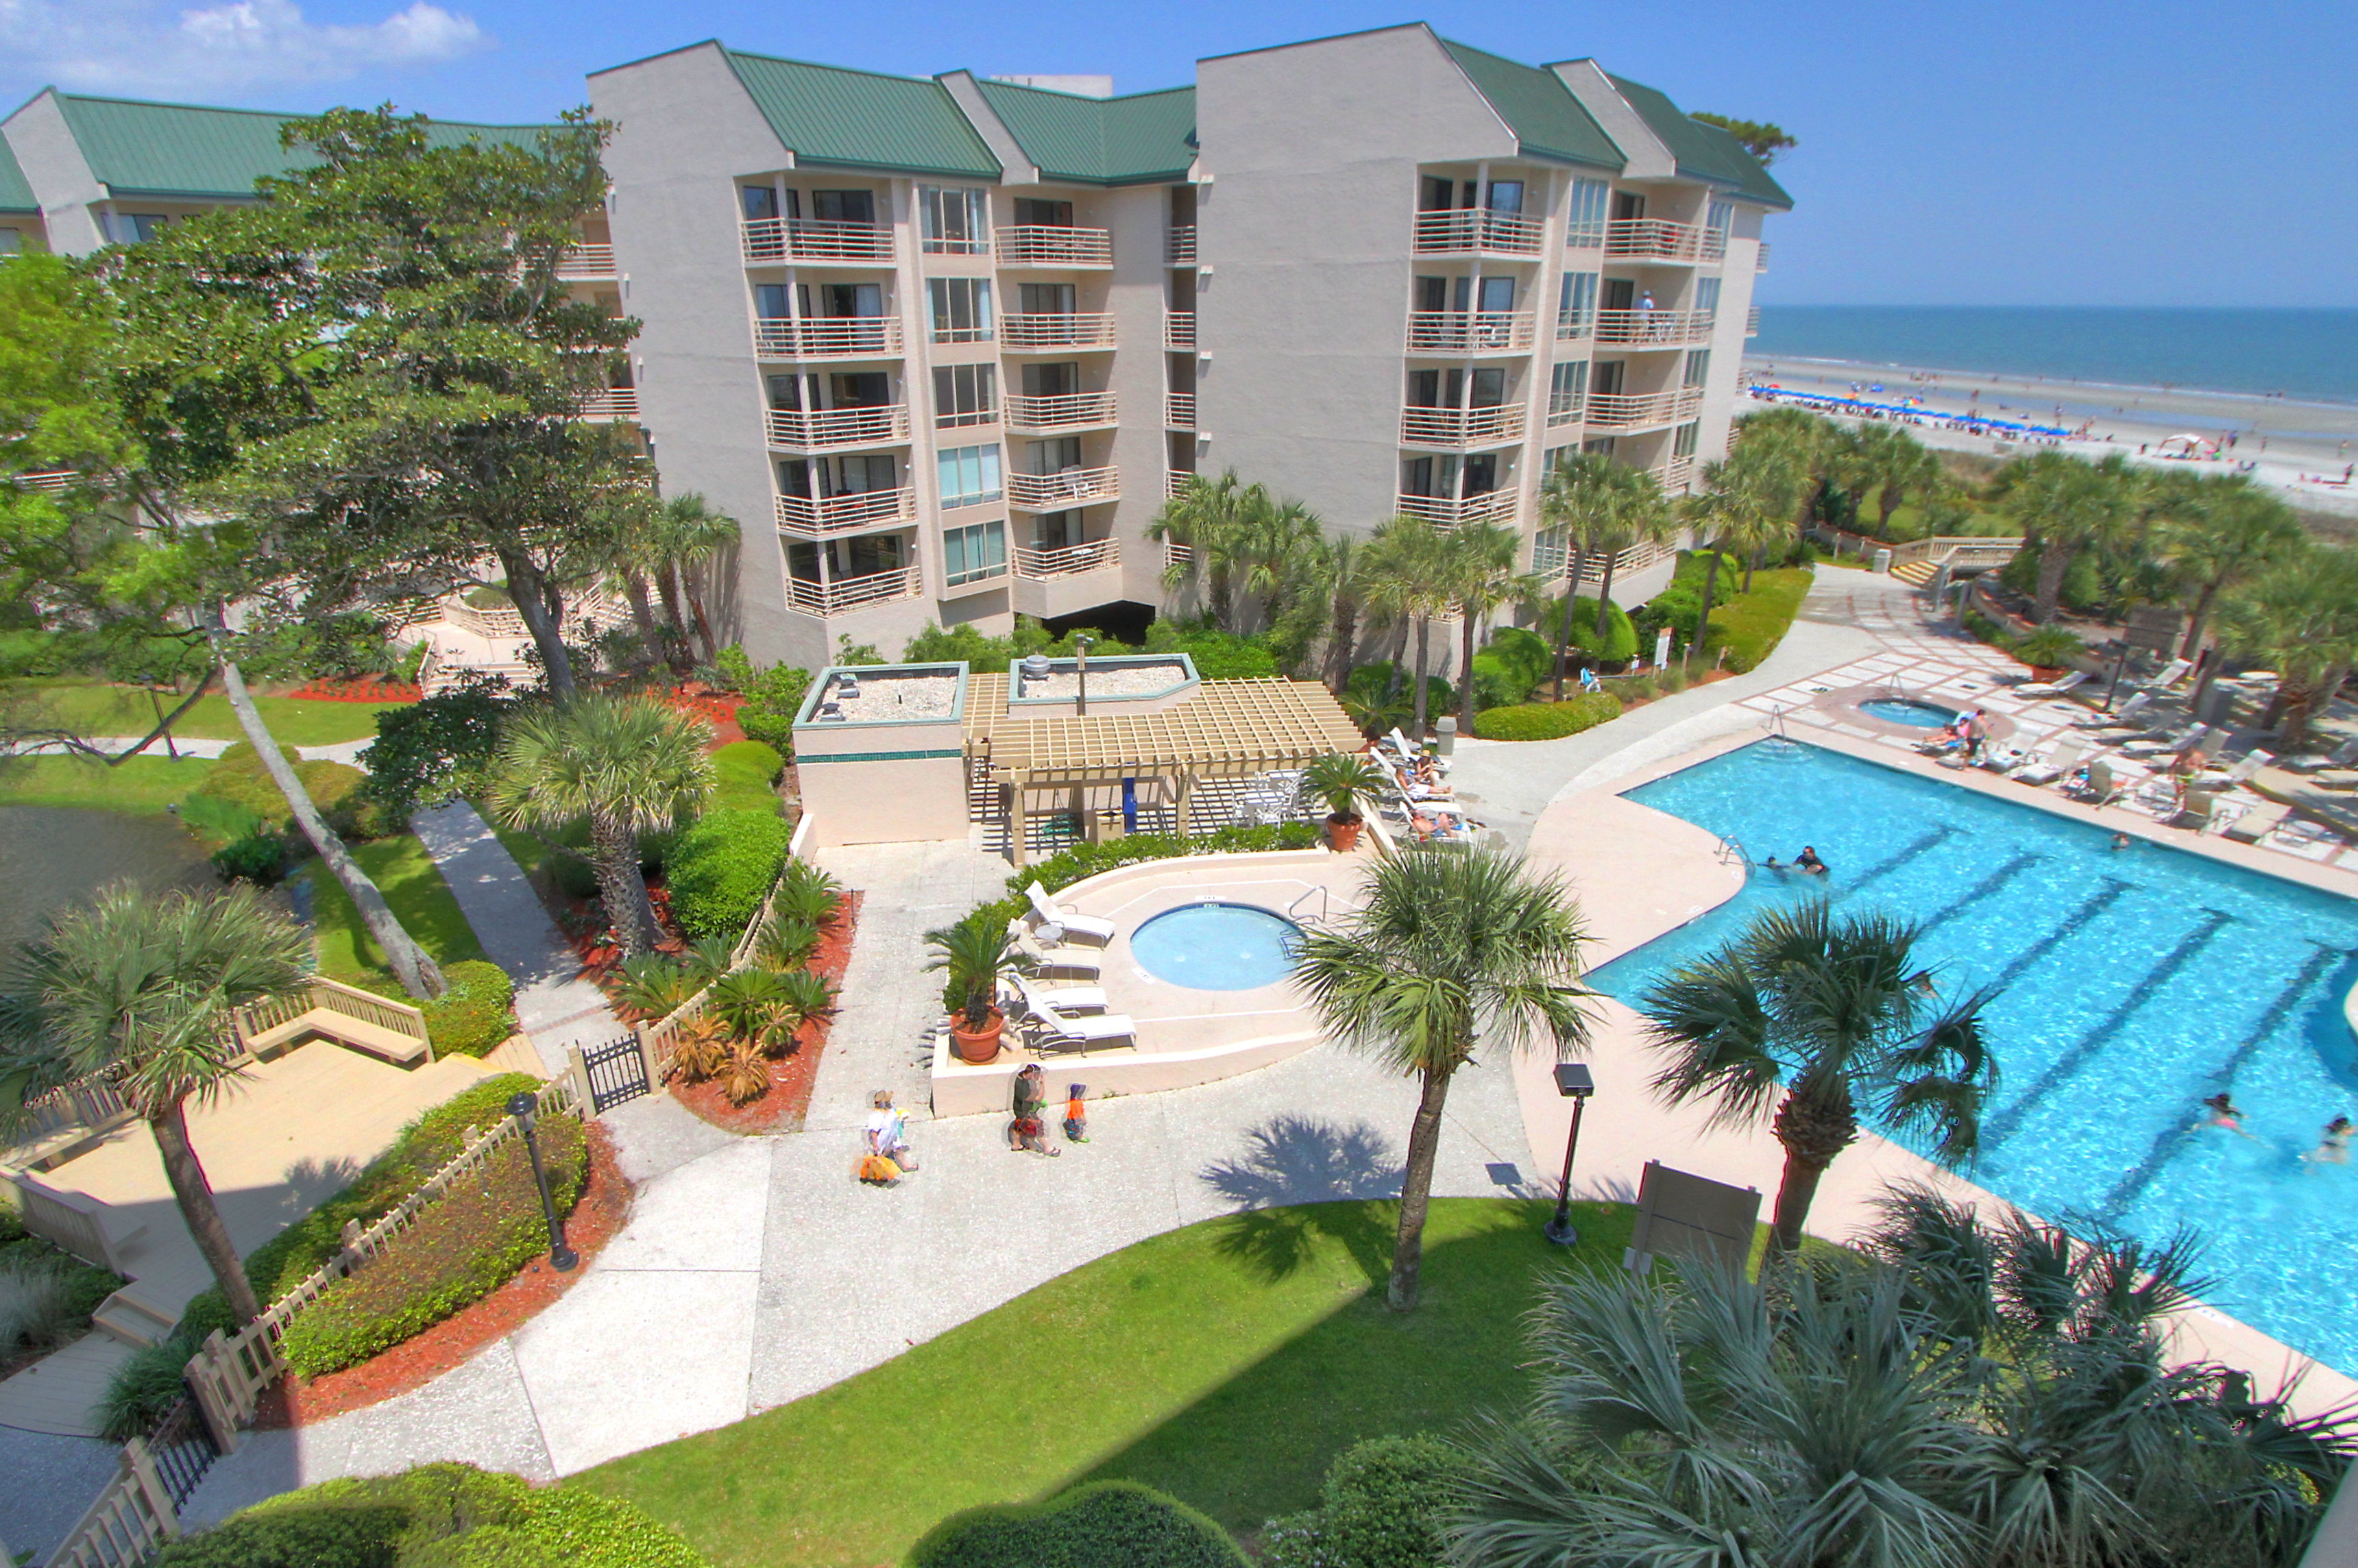 Villamare Villas in Palmetto Dunes Hilton Head